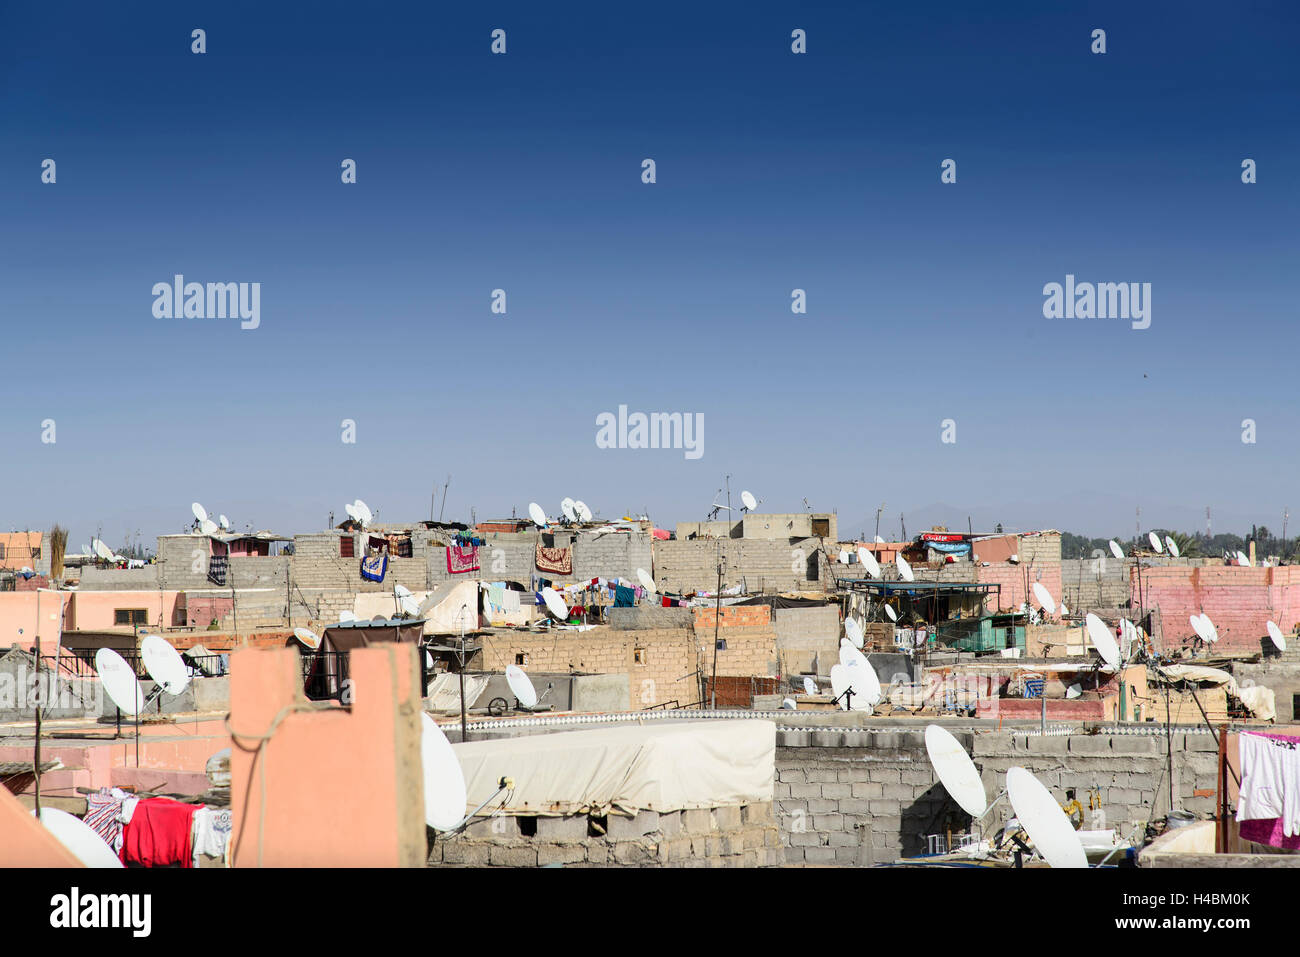 Africa, Morocco, Marrakech, view of Medina, satellite dishes, - Stock Image